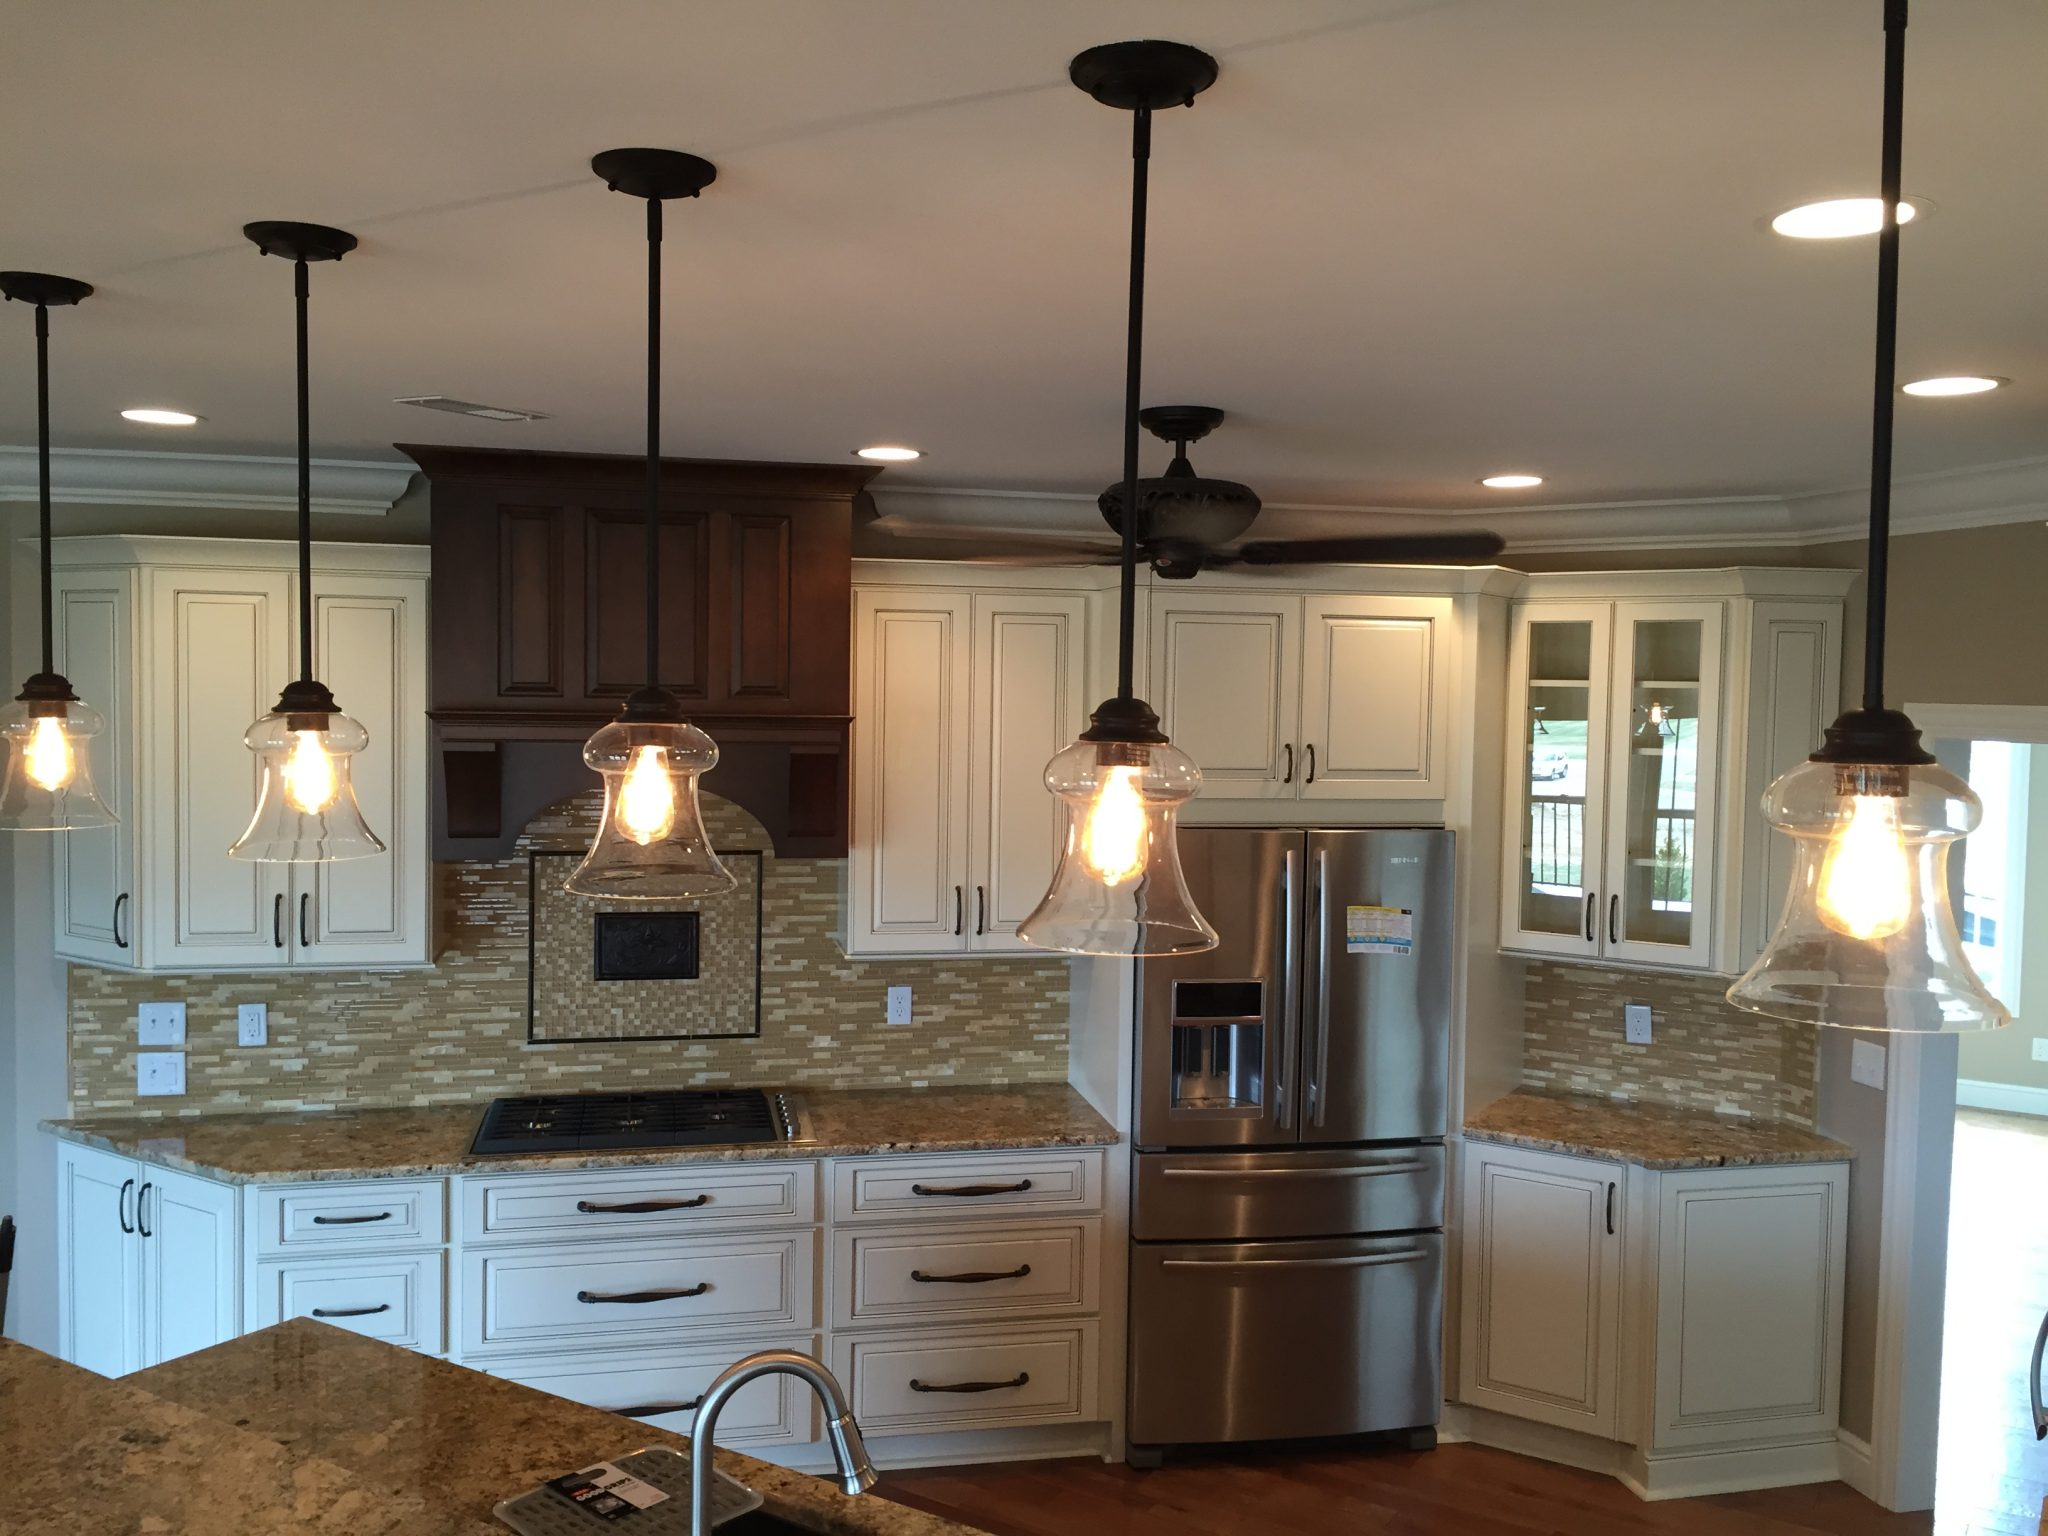 close up of hanging lights in kitchen